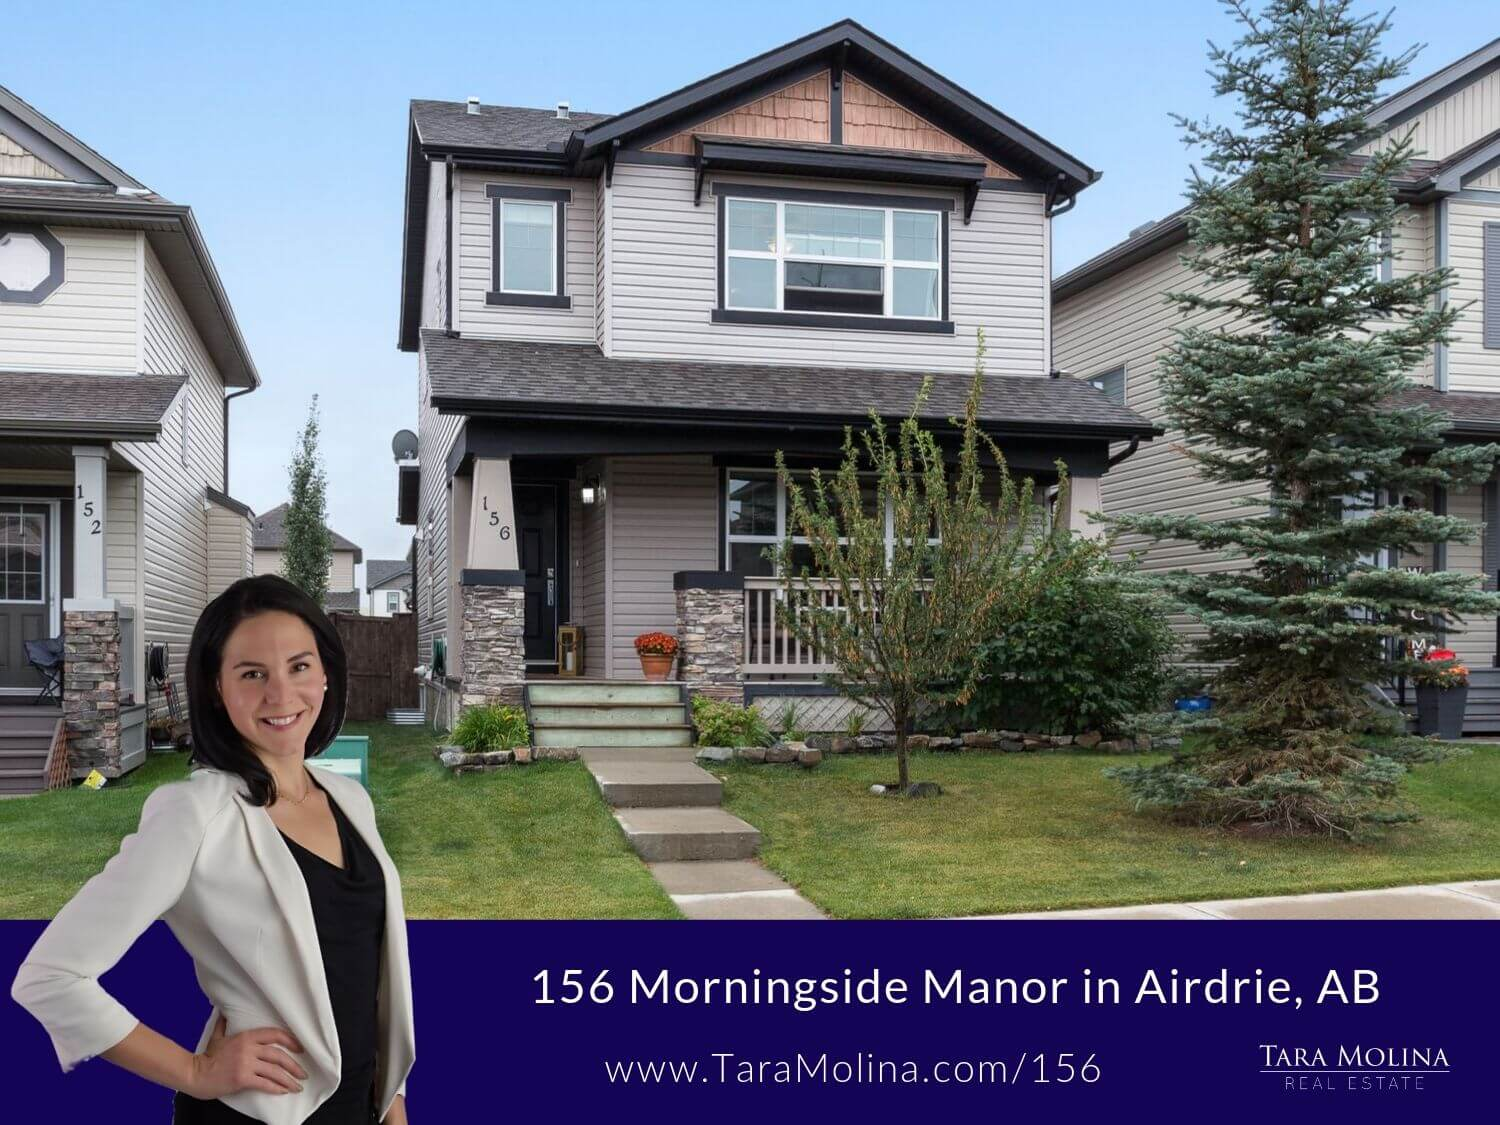 156 Morningside Manor in Airdrie, AB - Listing